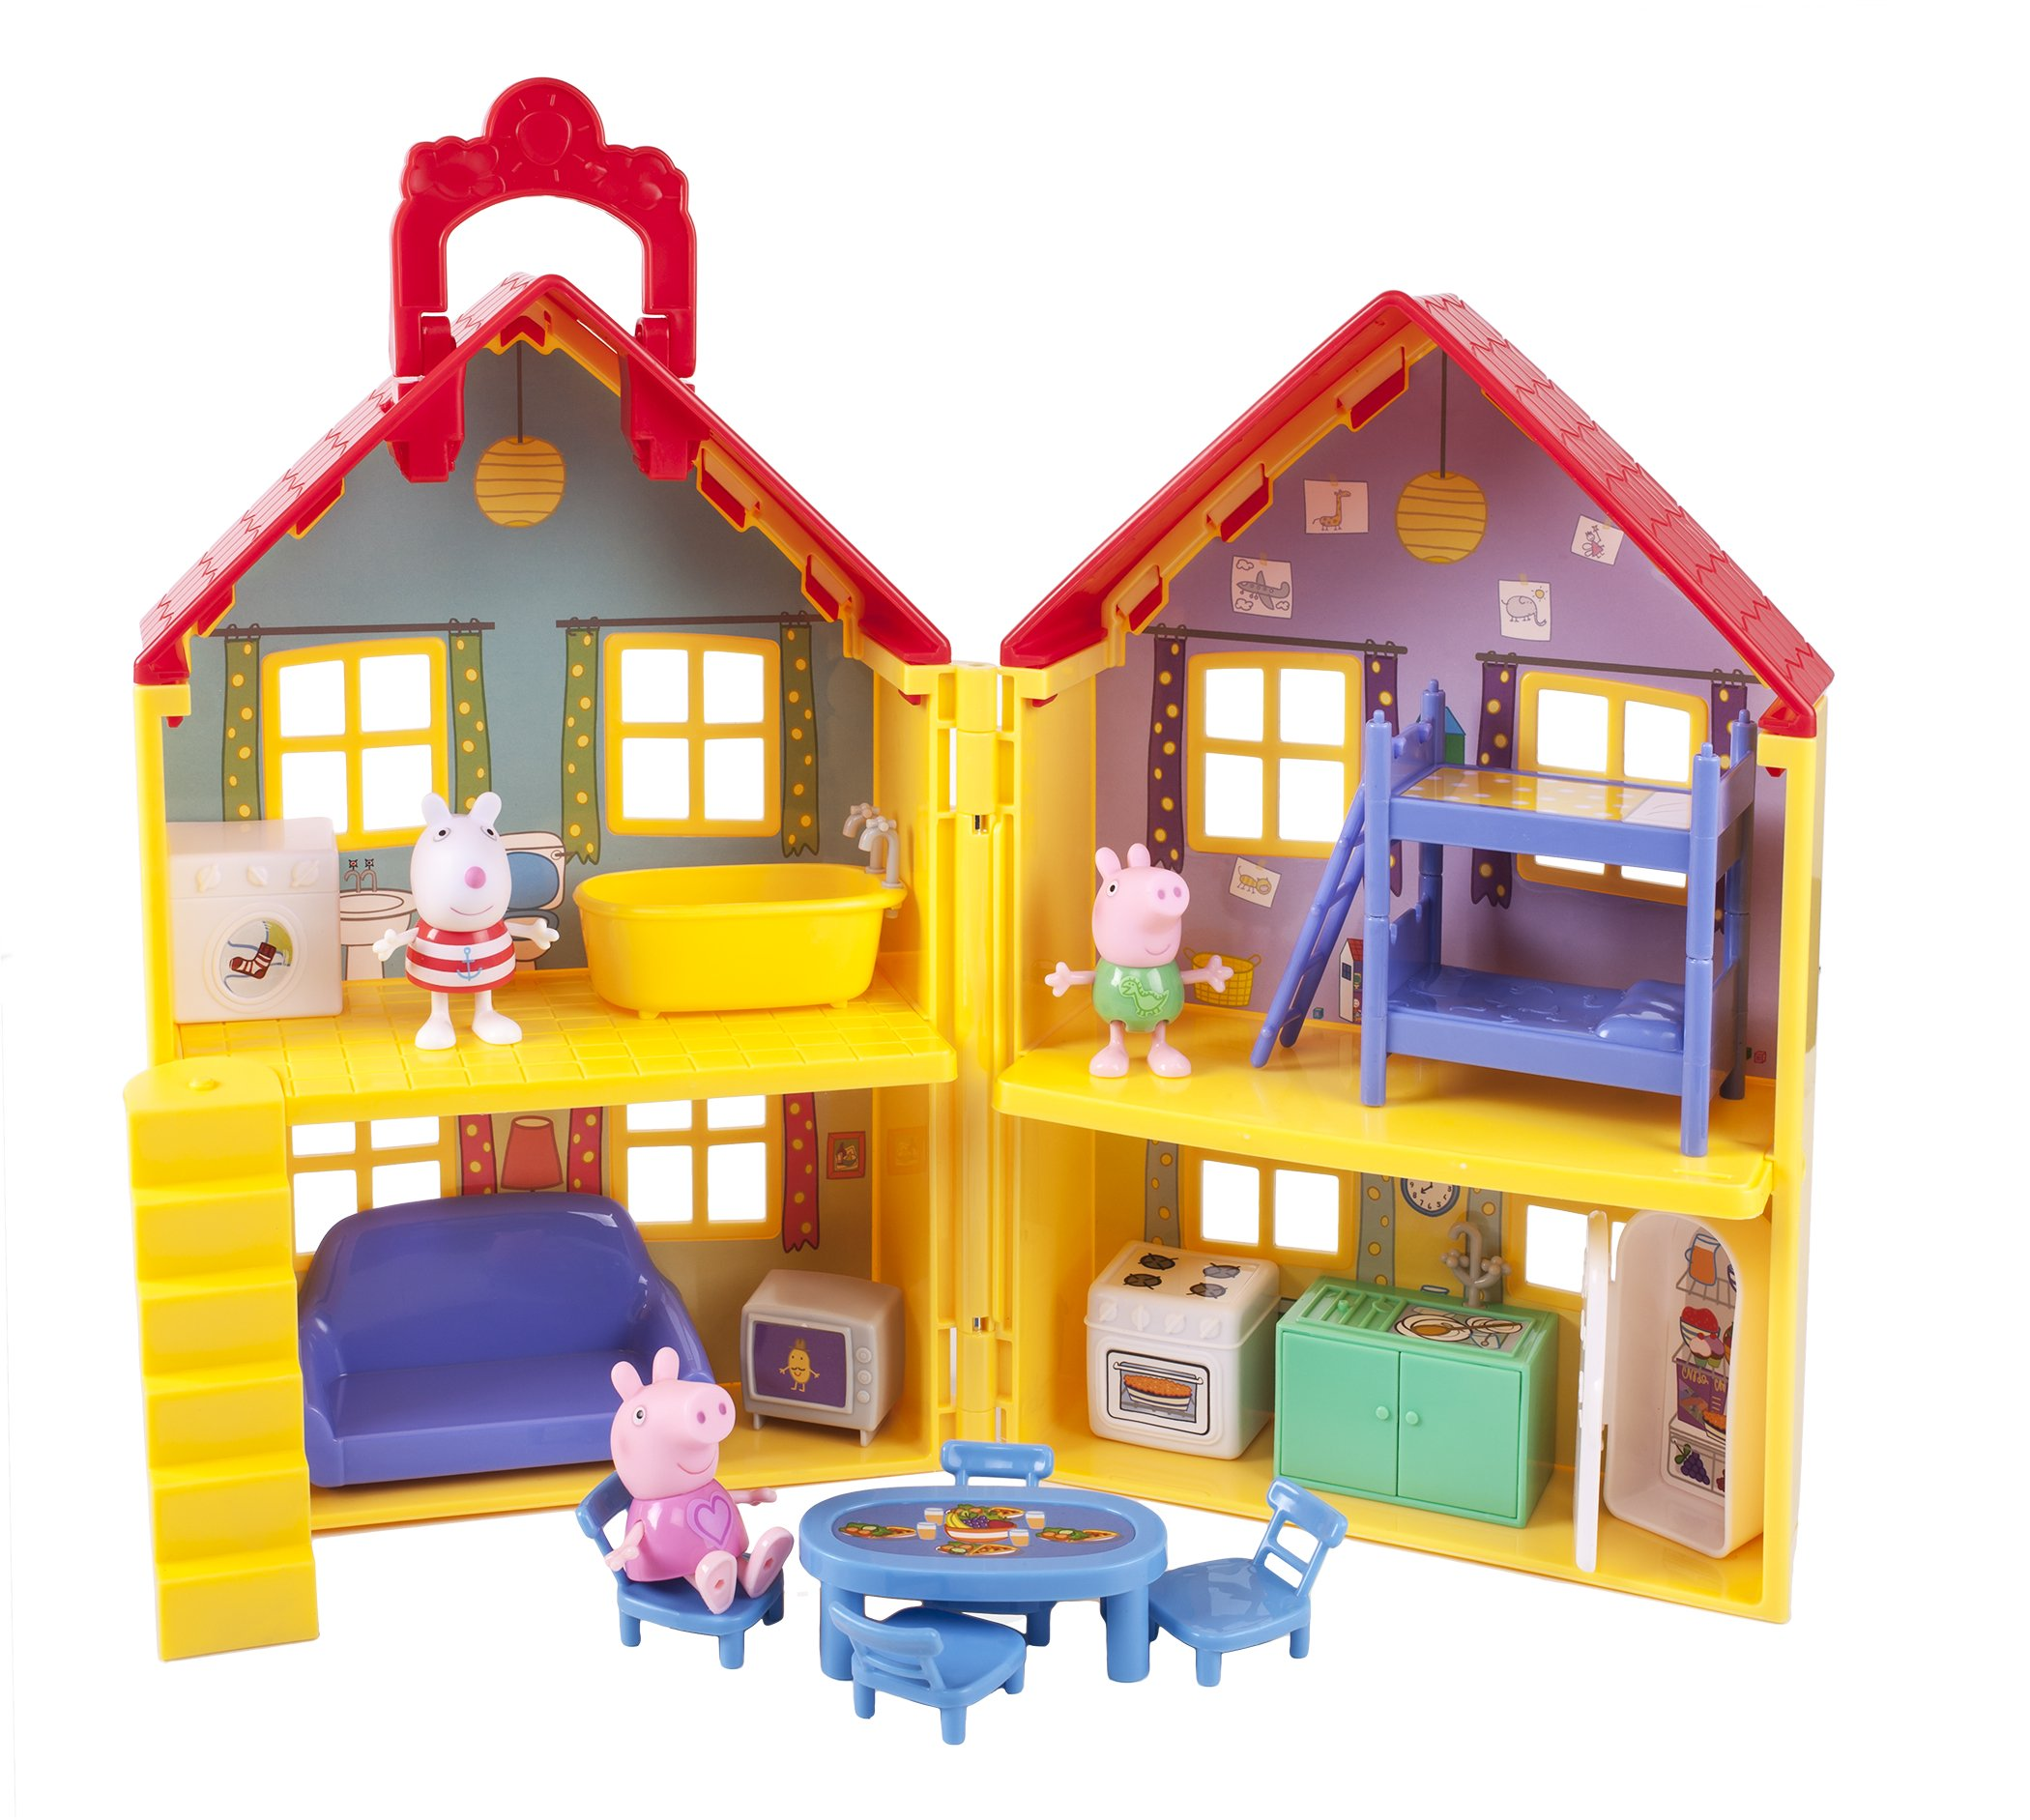 Peppa Pig's Deluxe House Playset by Peppa Pig